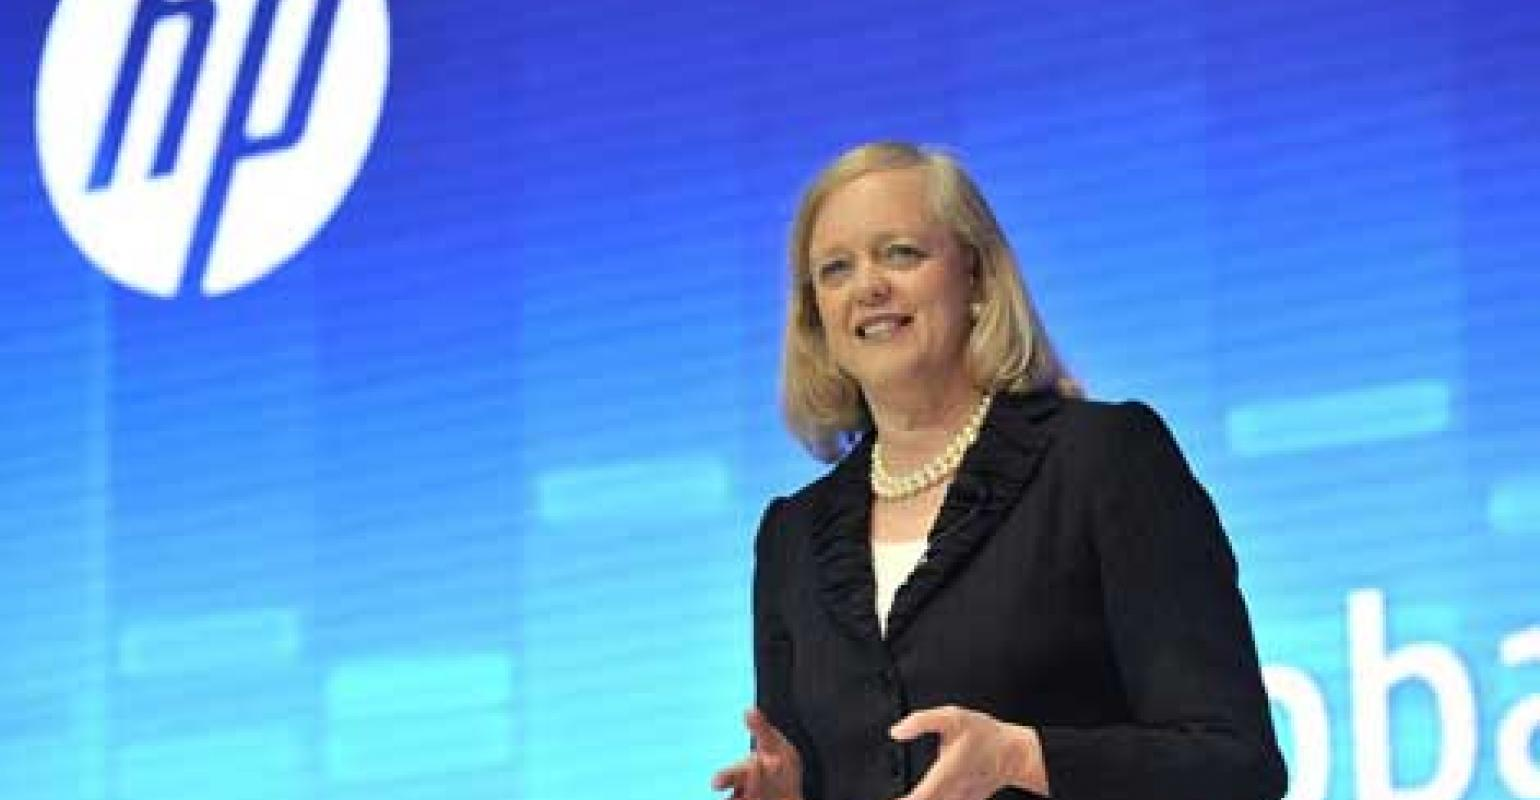 Aruba Takeover Largest HP Acquisition on Whitman's Watch